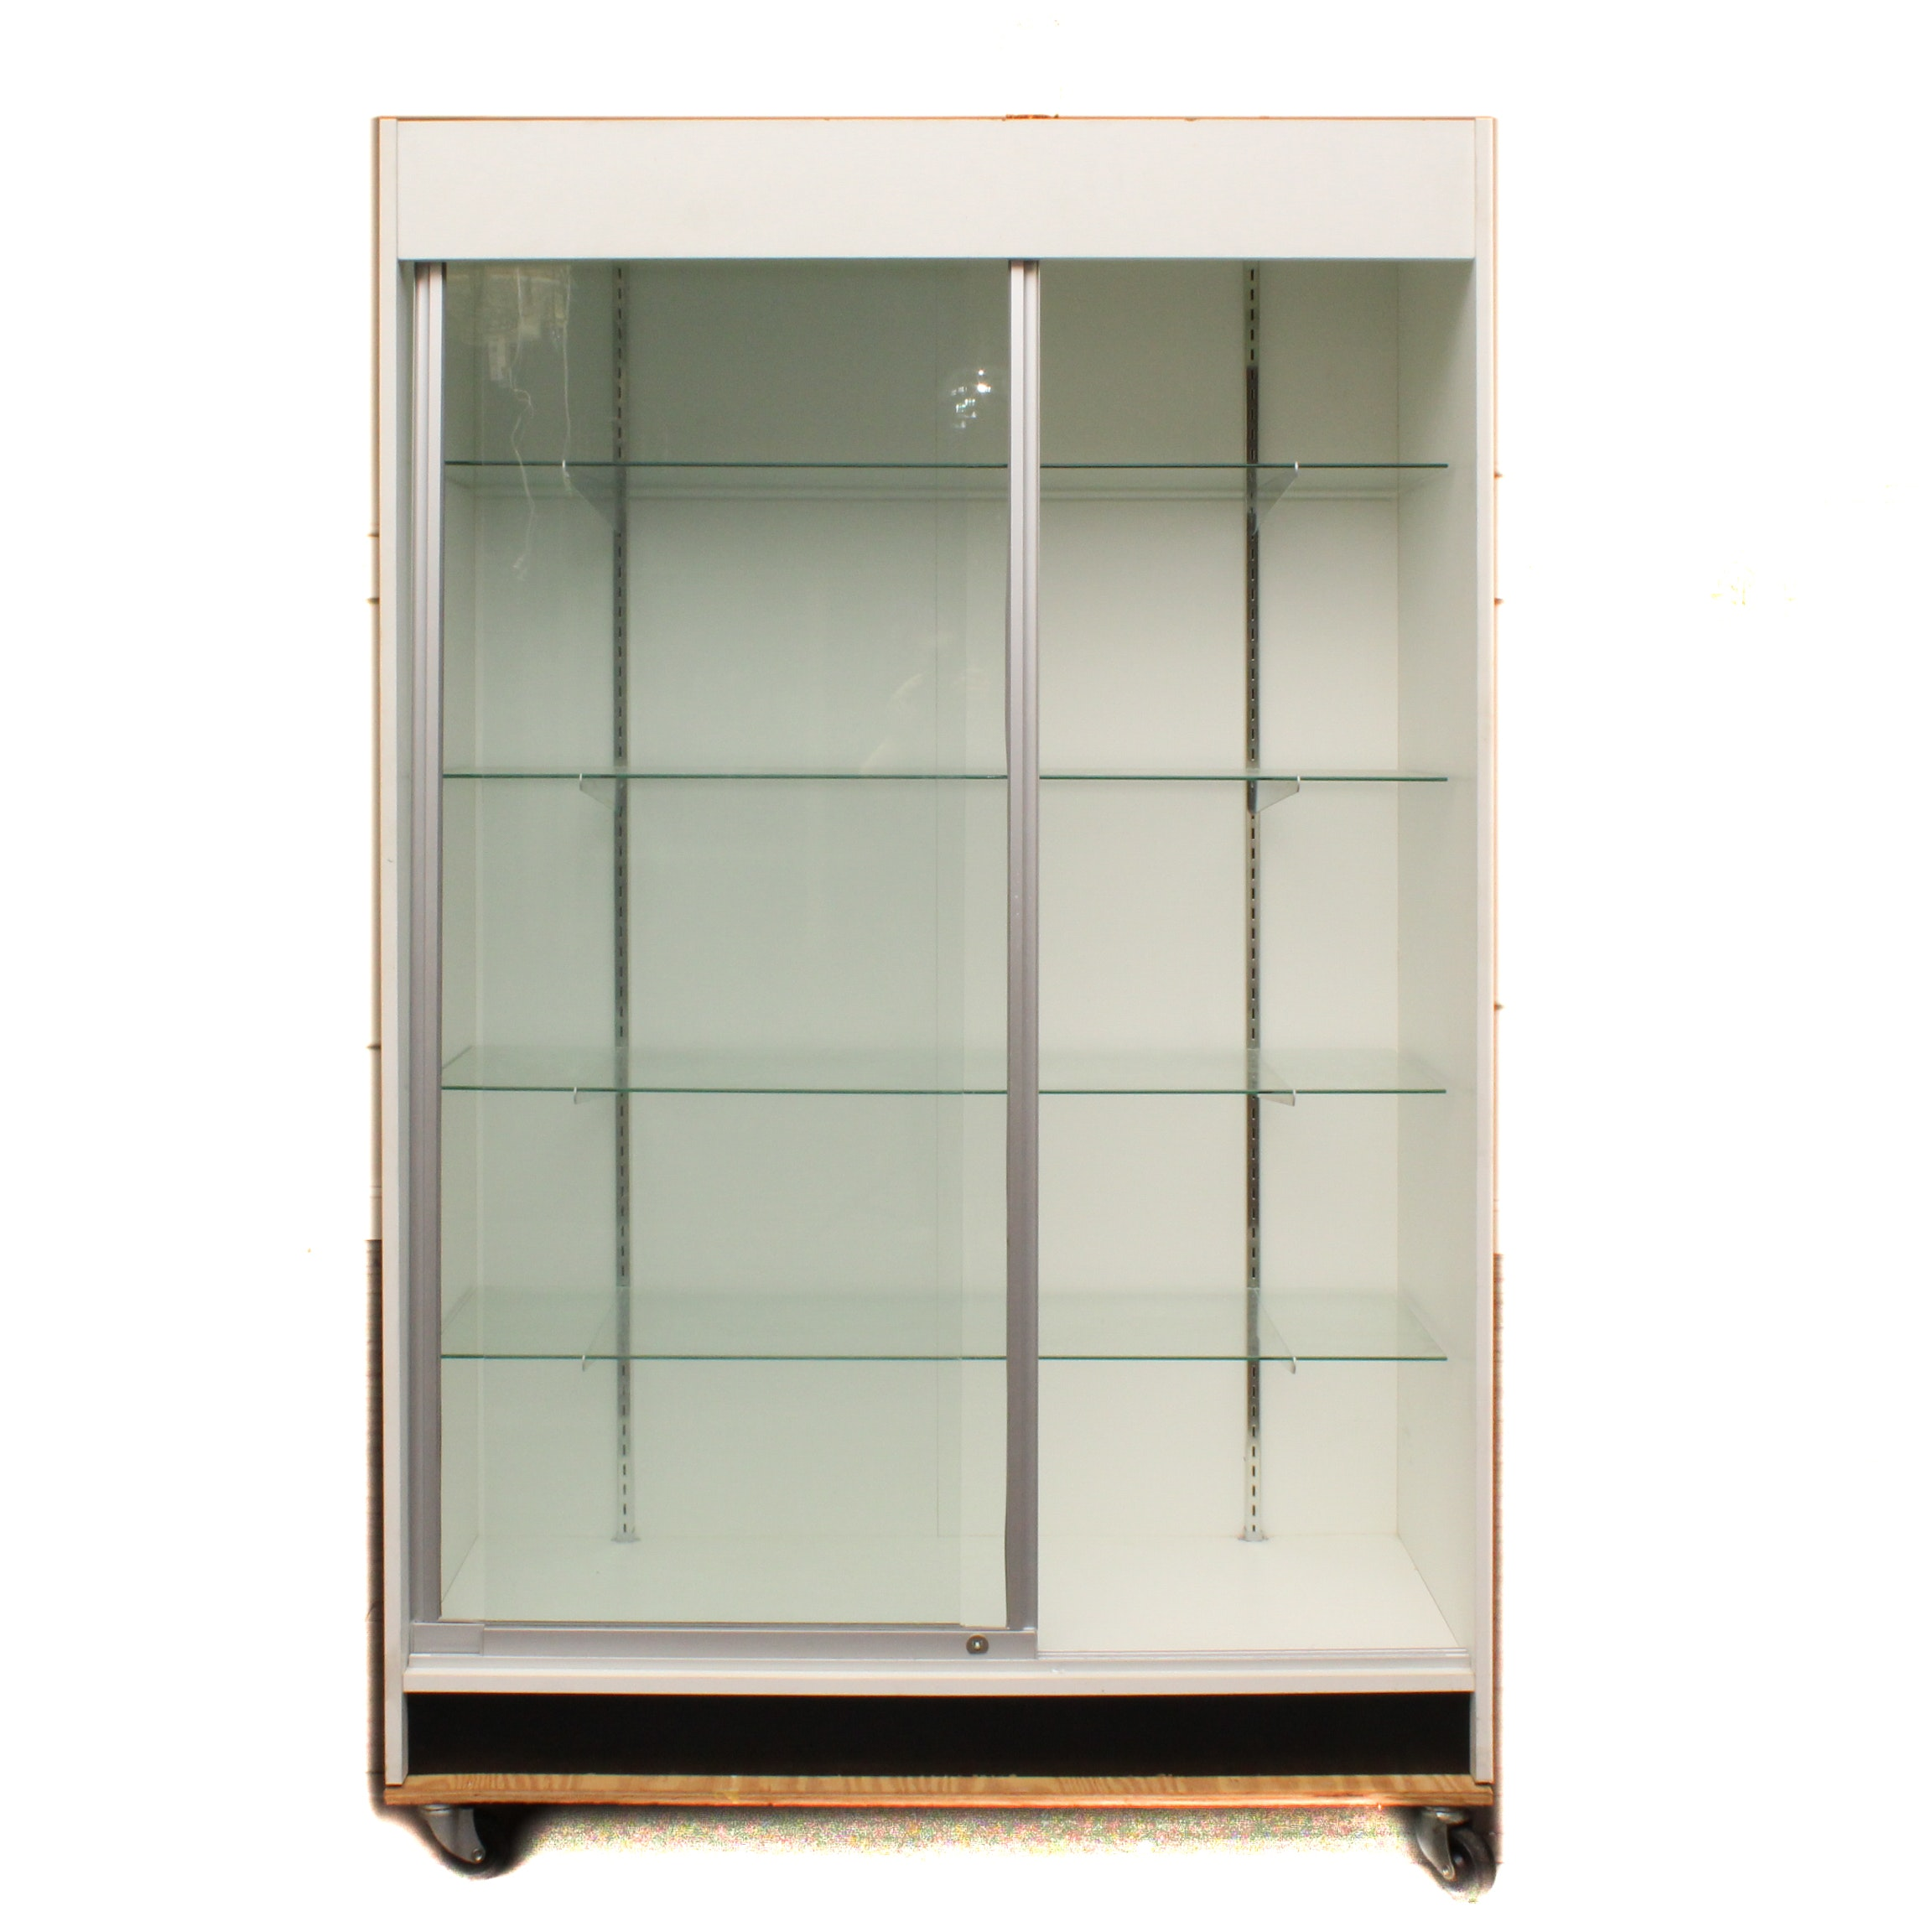 Display Case with Sliding Glass Doors